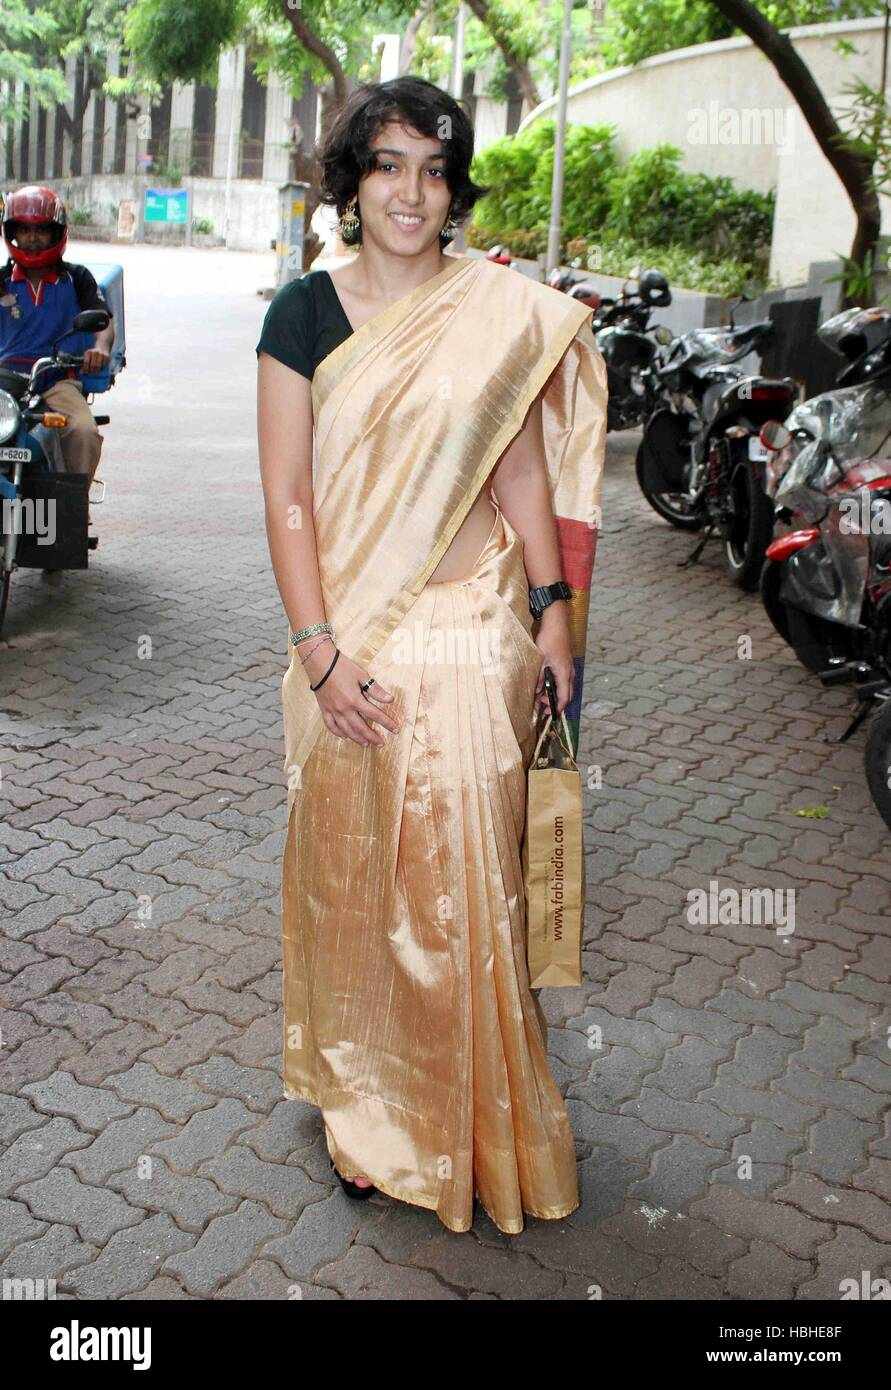 Bollywood actor Aamir Khan daughter Ira Khan during the Eid-al-Fitr celebration, in Mumbai, India on July 18, 2015. - Stock Image